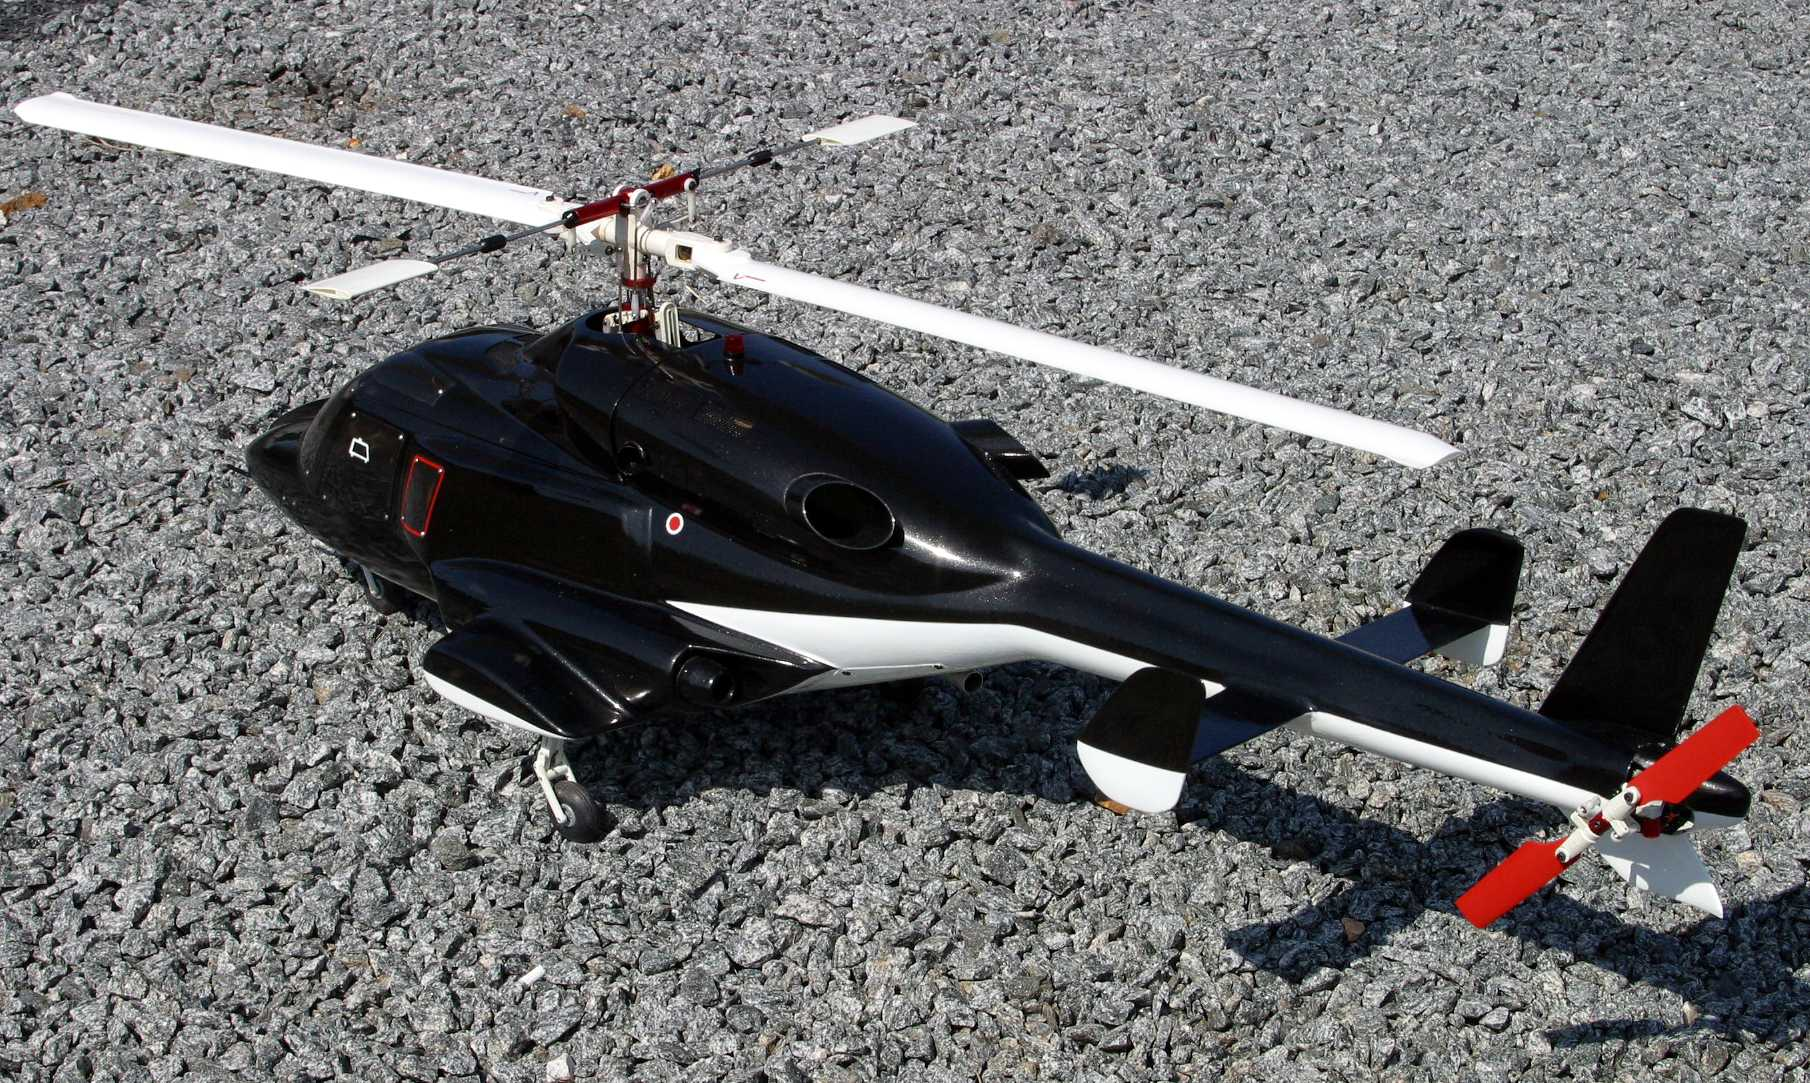 bell 222 rc helicopter electric with Airwolf Helicopter Rc on Bell 222 Airwolf Helicopter For Sale additionally Cmm additionally Airwolf Helicopter Rc furthermore Private Helicopters together with Gomhp3mLwLY.